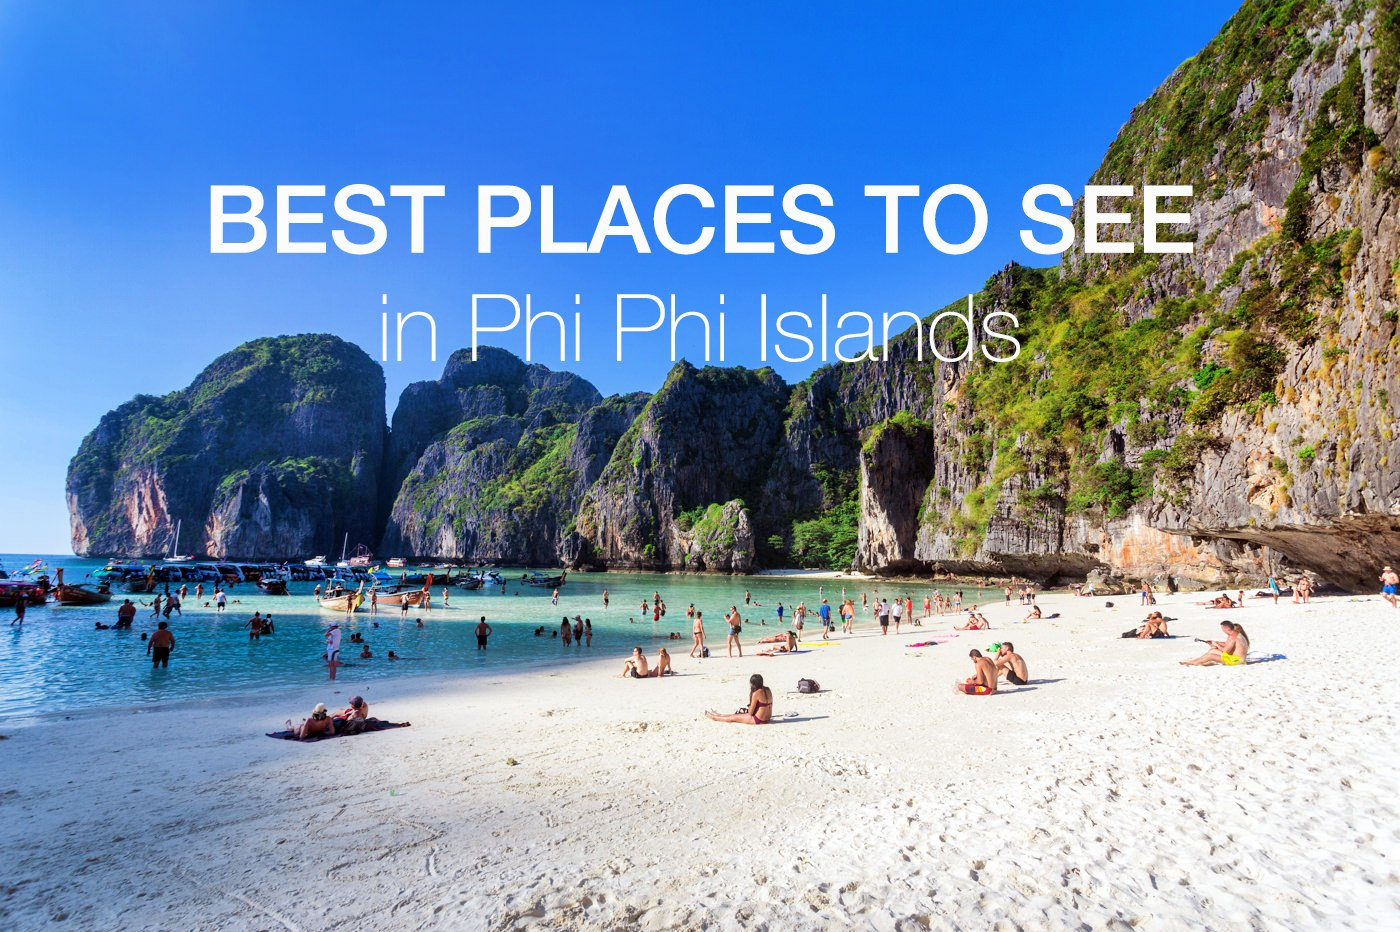 What to Do in Phi Phi Islands – 6 Best Places to See in Phi Phi